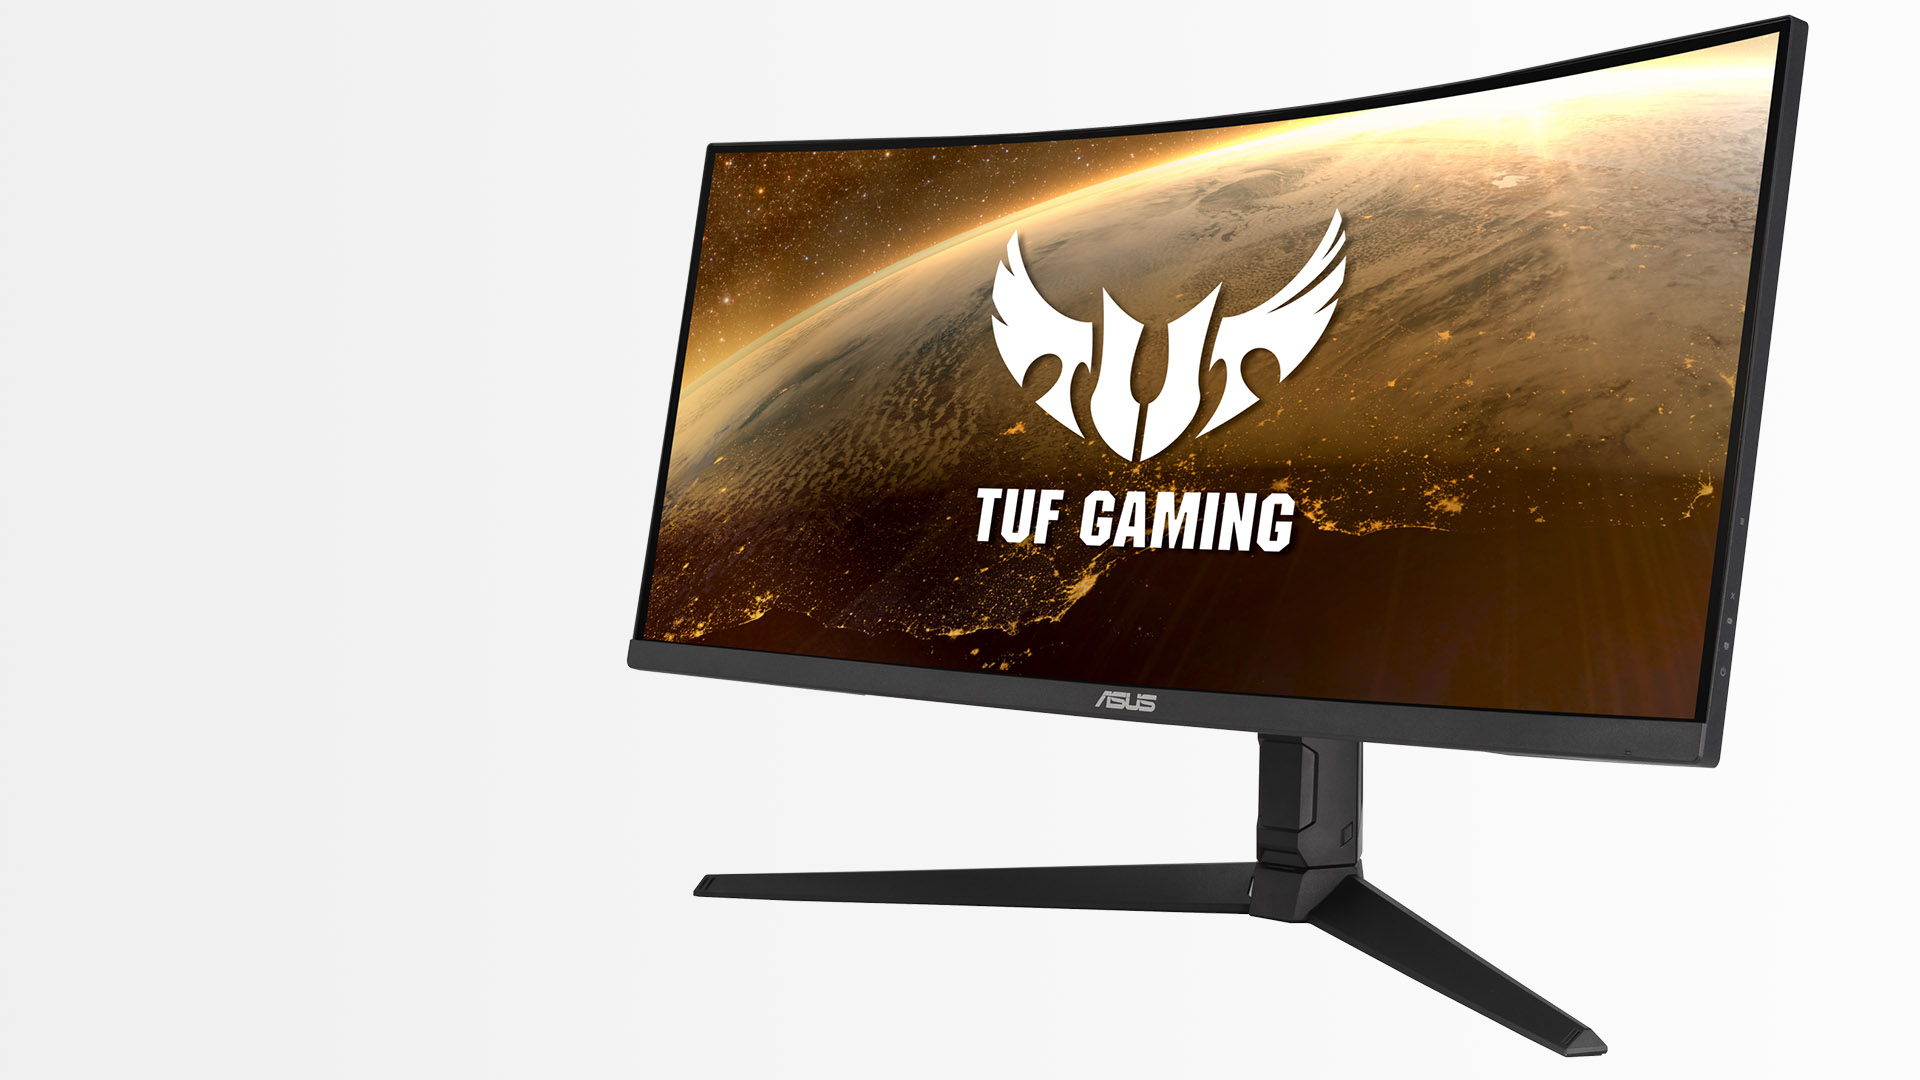 New screen from Asus is big, fast, TUF